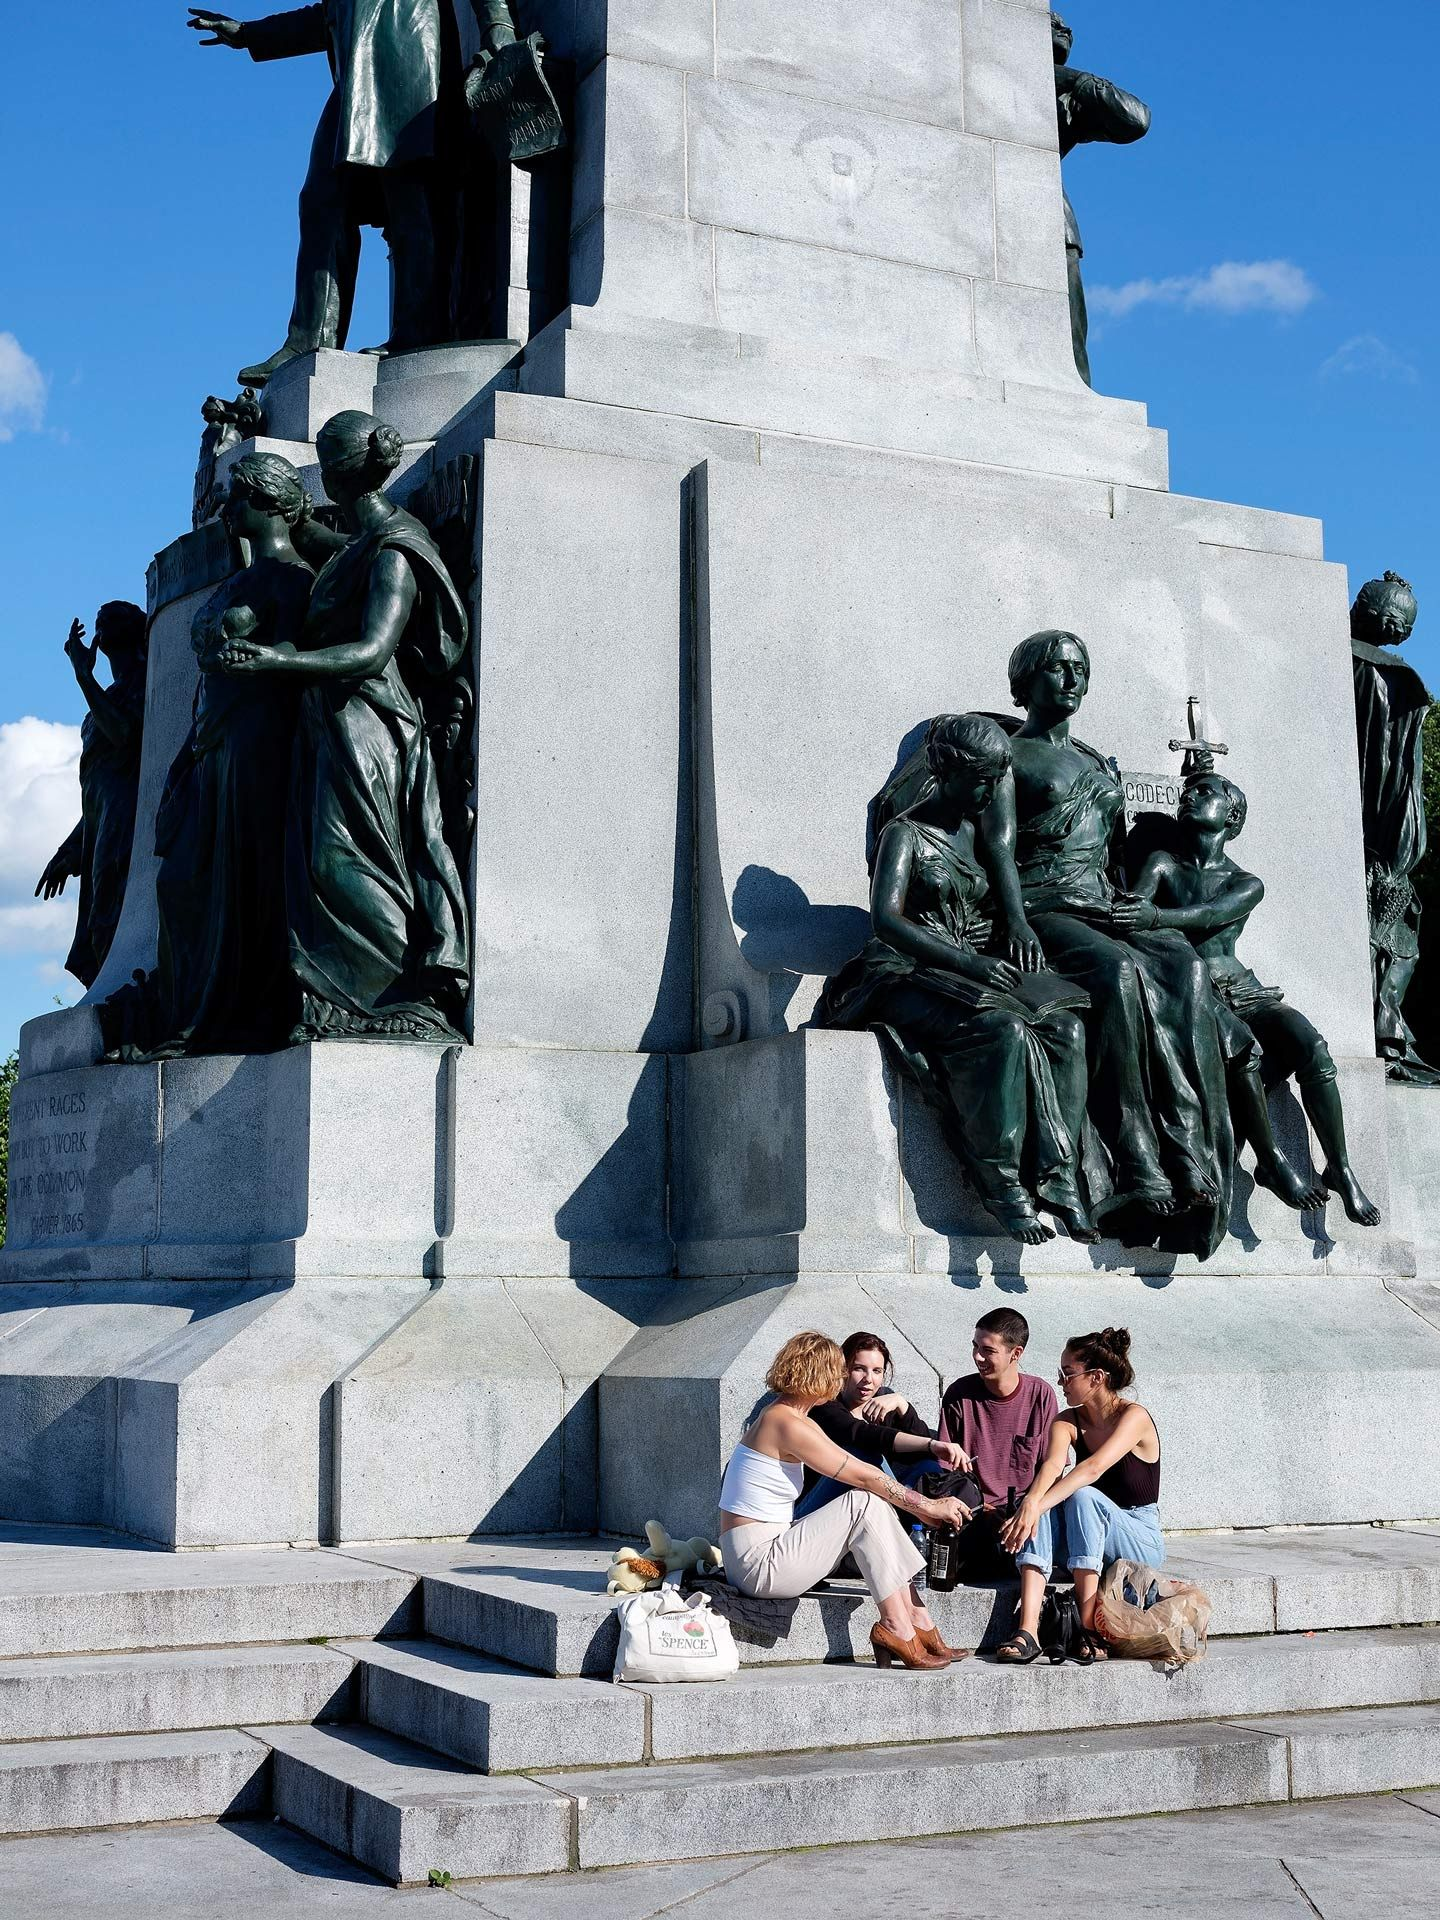 group of four sitting at the foot of Mount-Royal monument talking and laughing in the sun photographed by Guillaume Simoneau as part of Off Duty Montreal series for The Wall Street Journal magazine